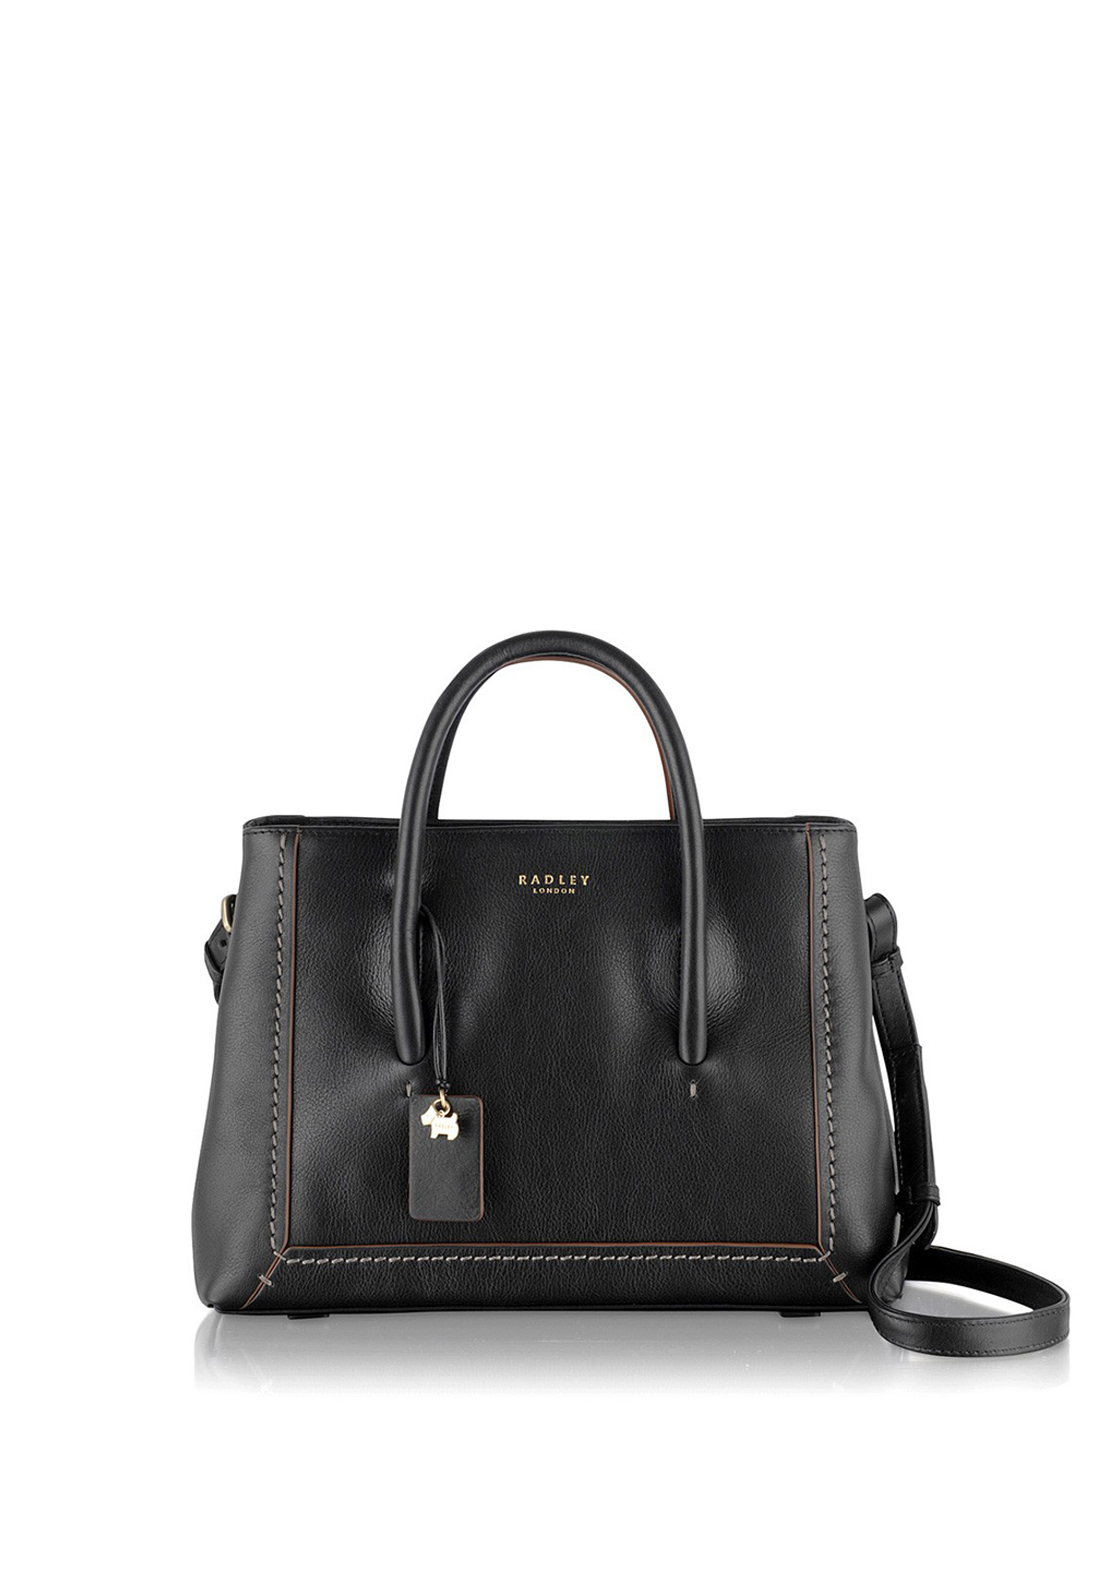 Radley London Grab Bag Multi Black